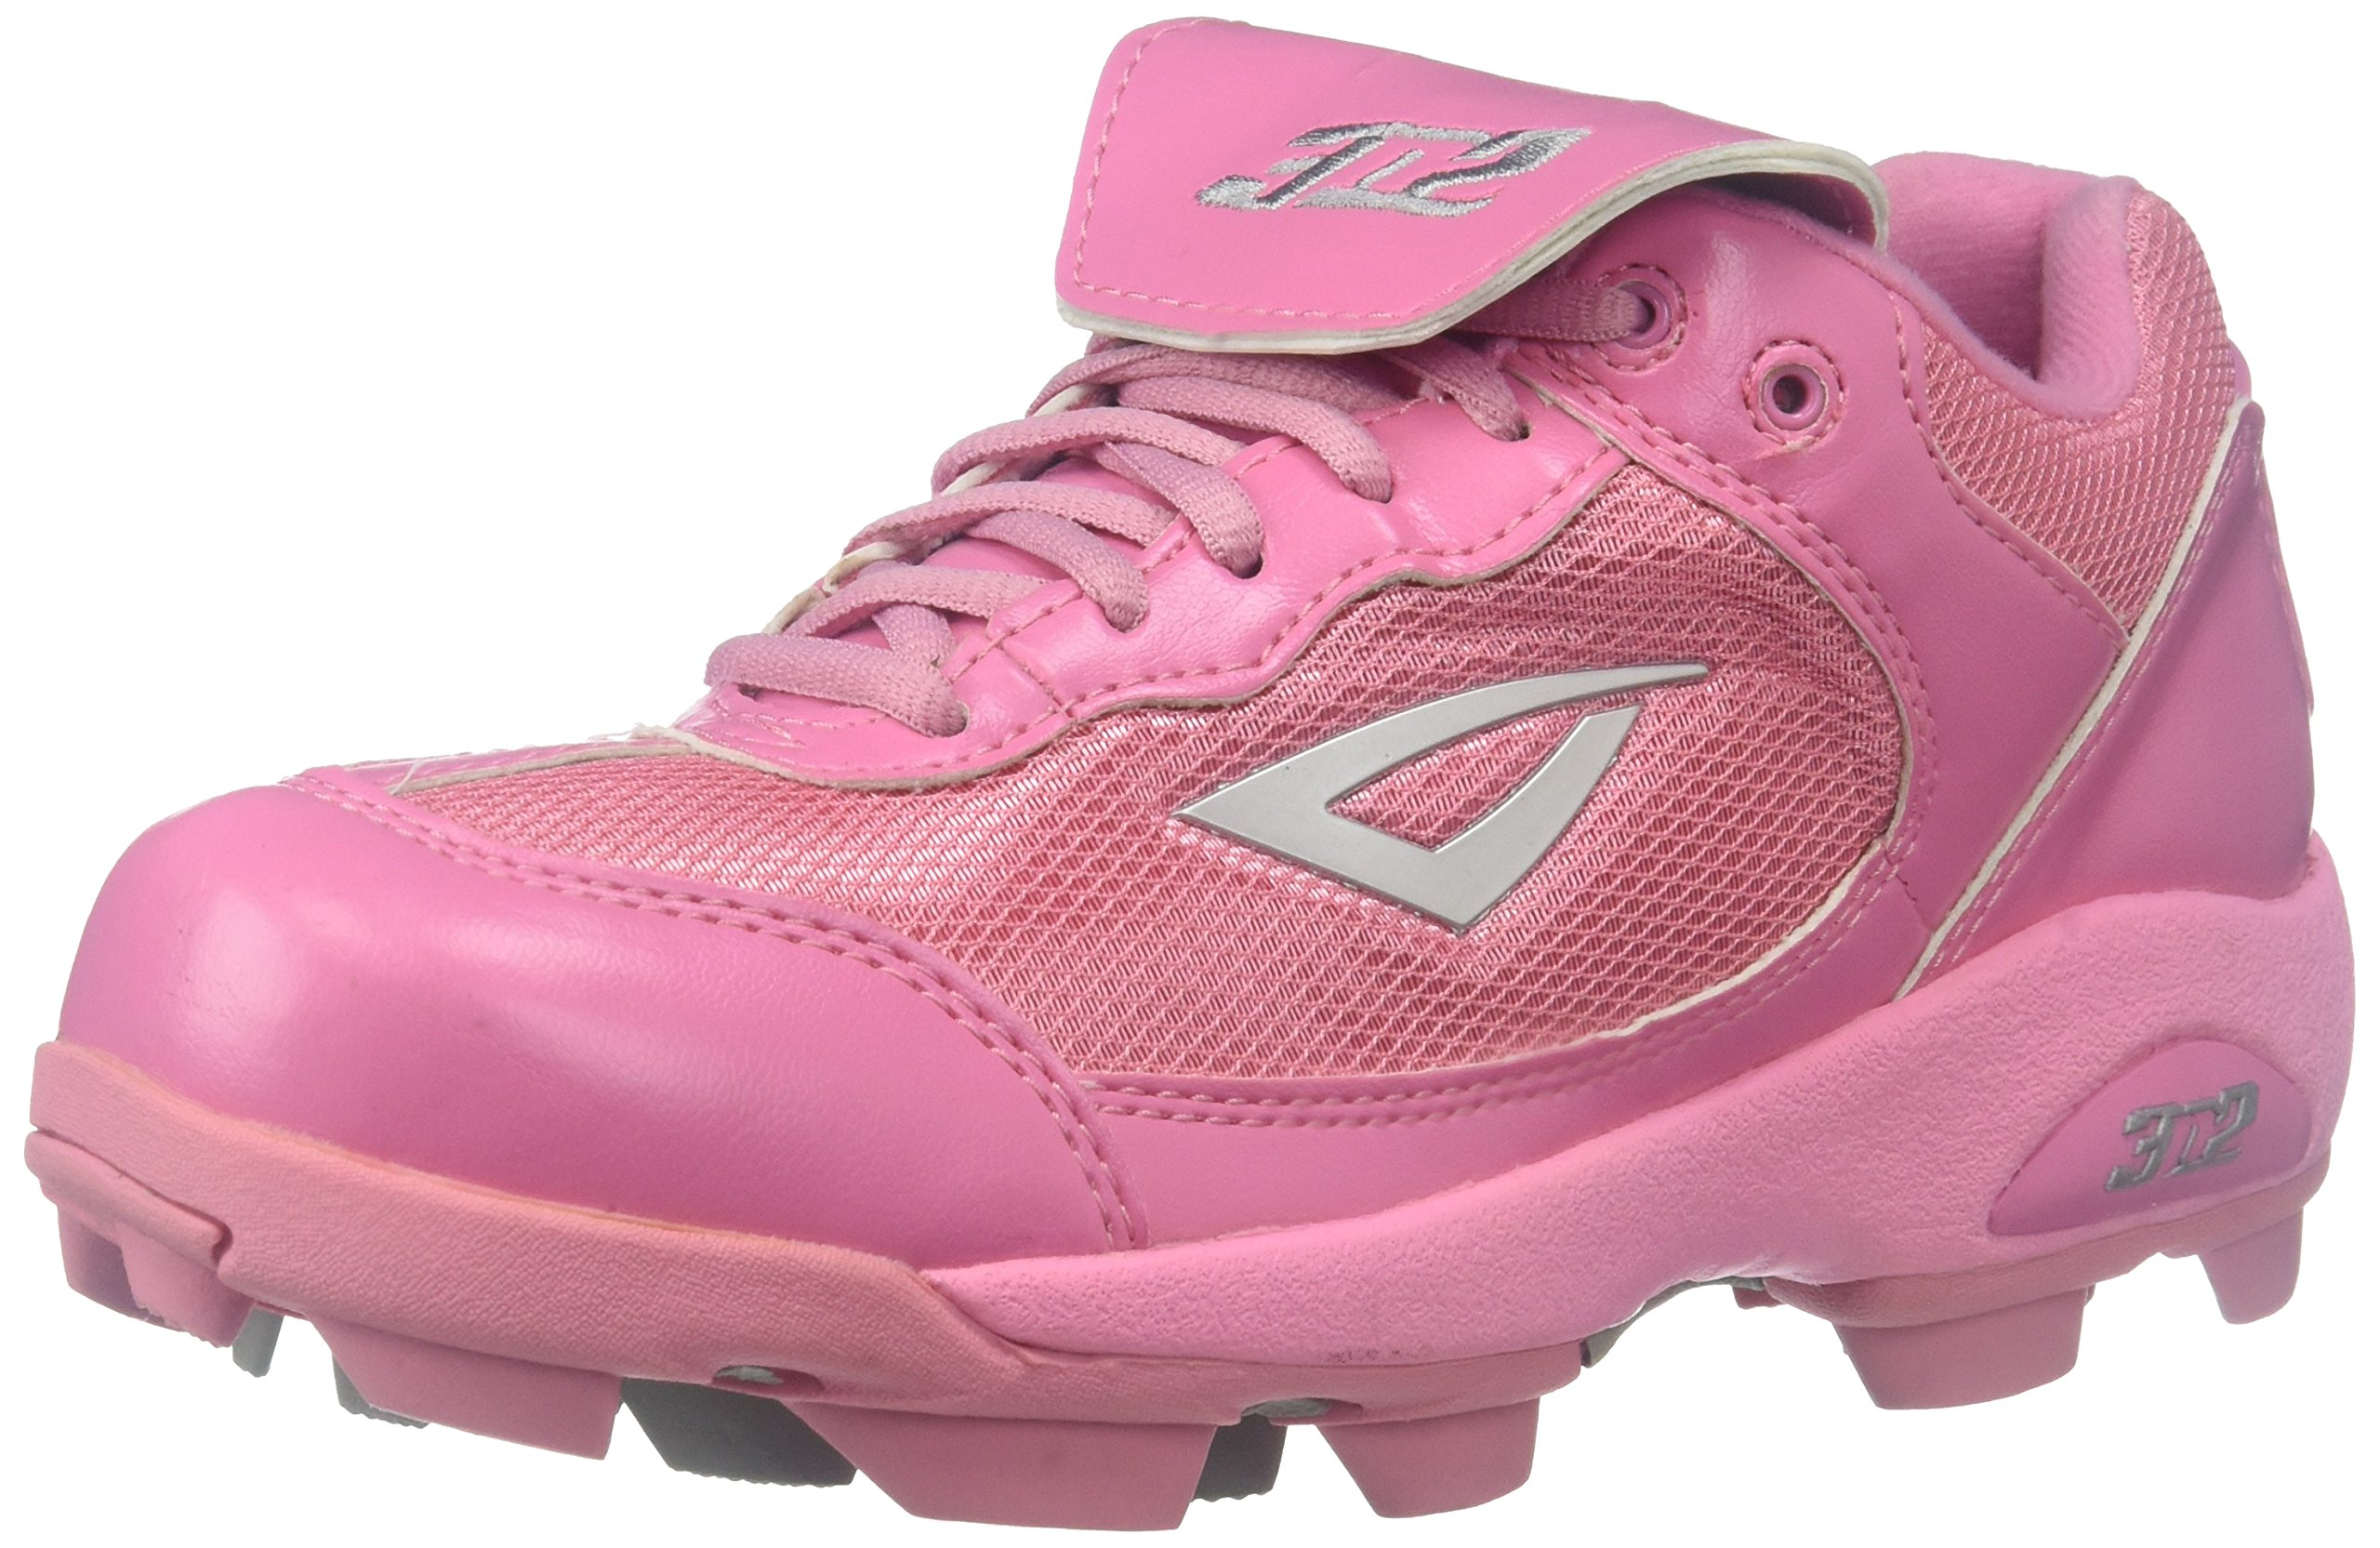 3N2 Youth Rookie Shoes, Pink, Size 2.5 by 3N2